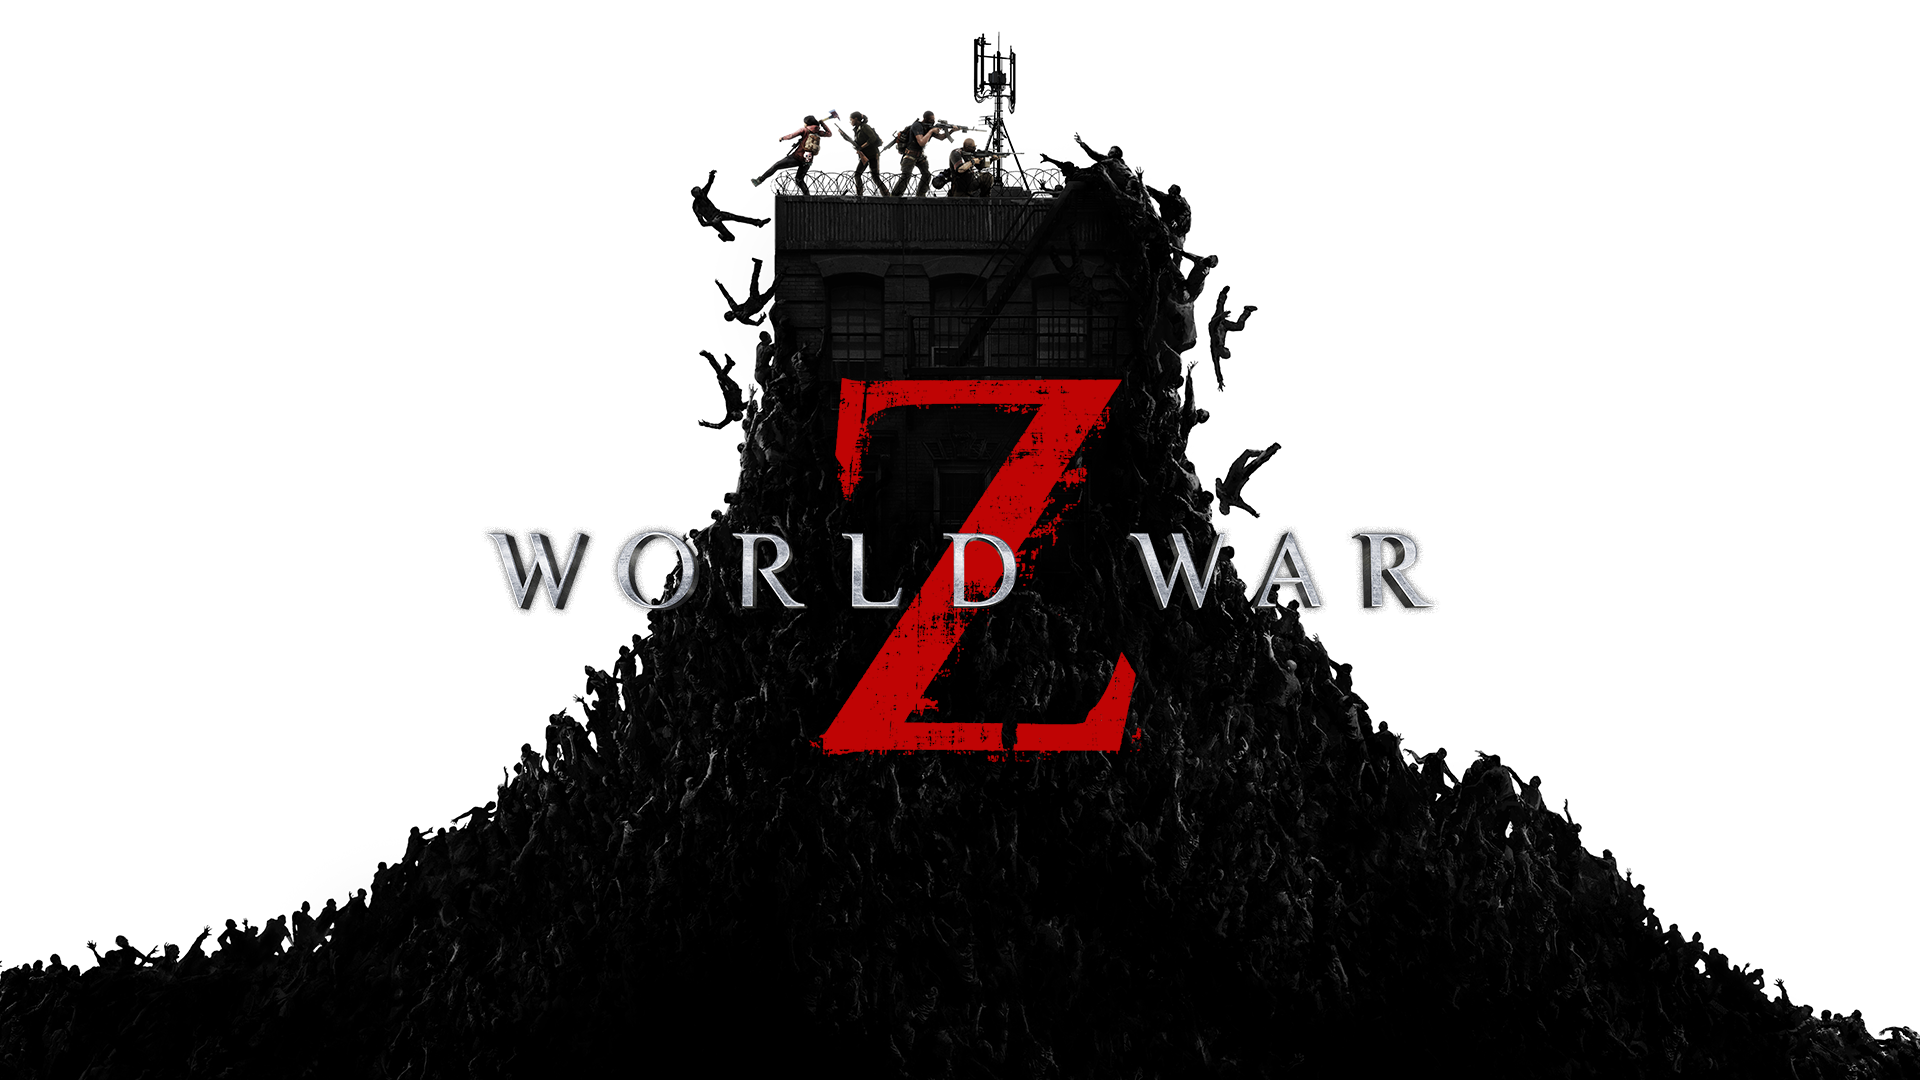 World, war, z, trophy, guide, achievements, complete, list, trophies, ps4, xbox, one, how, to get, earn, platinum, gold, silver, bronze, gamerscore